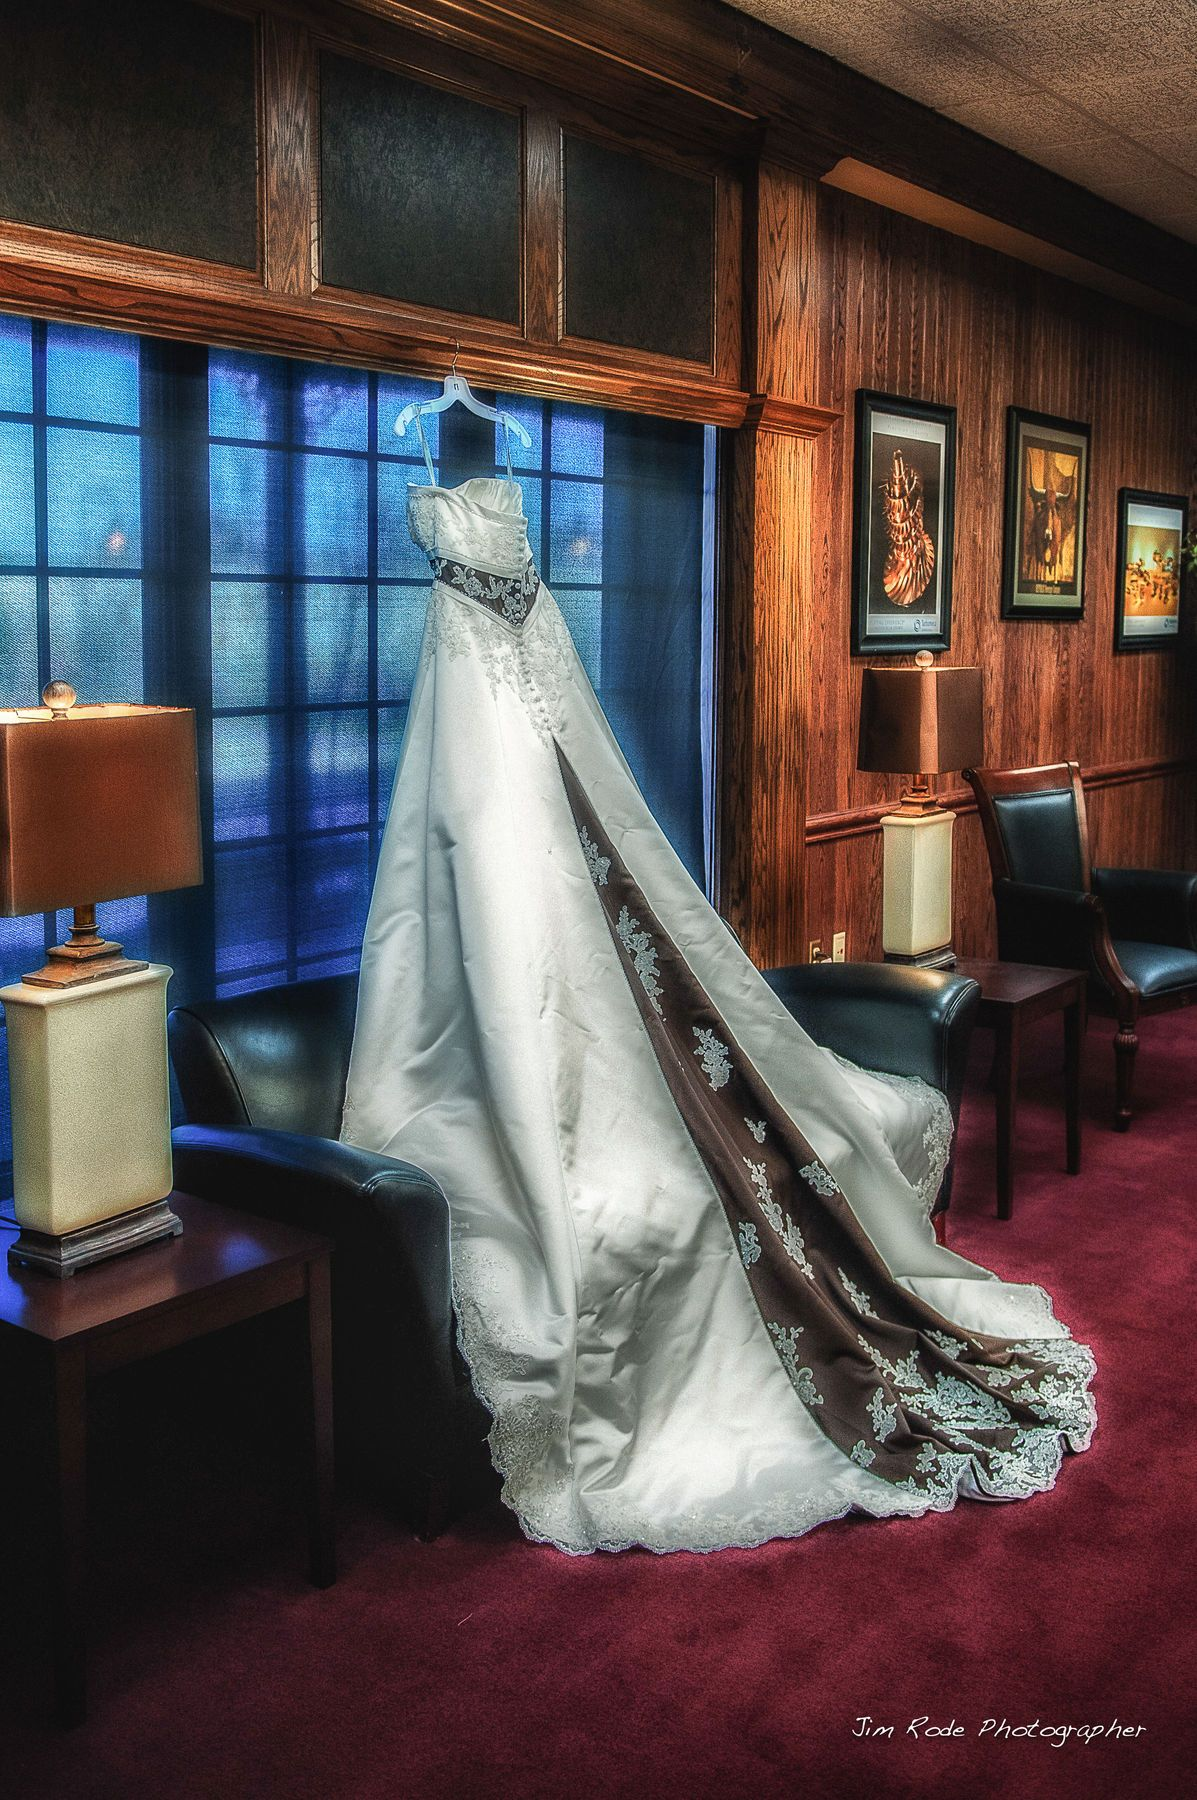 Such a gorgeous gown...dramatic. At the Ruthe Jackson Center in Grand Prairie. photo by Dallas wedding photographer Jim Rode at JimRode.com